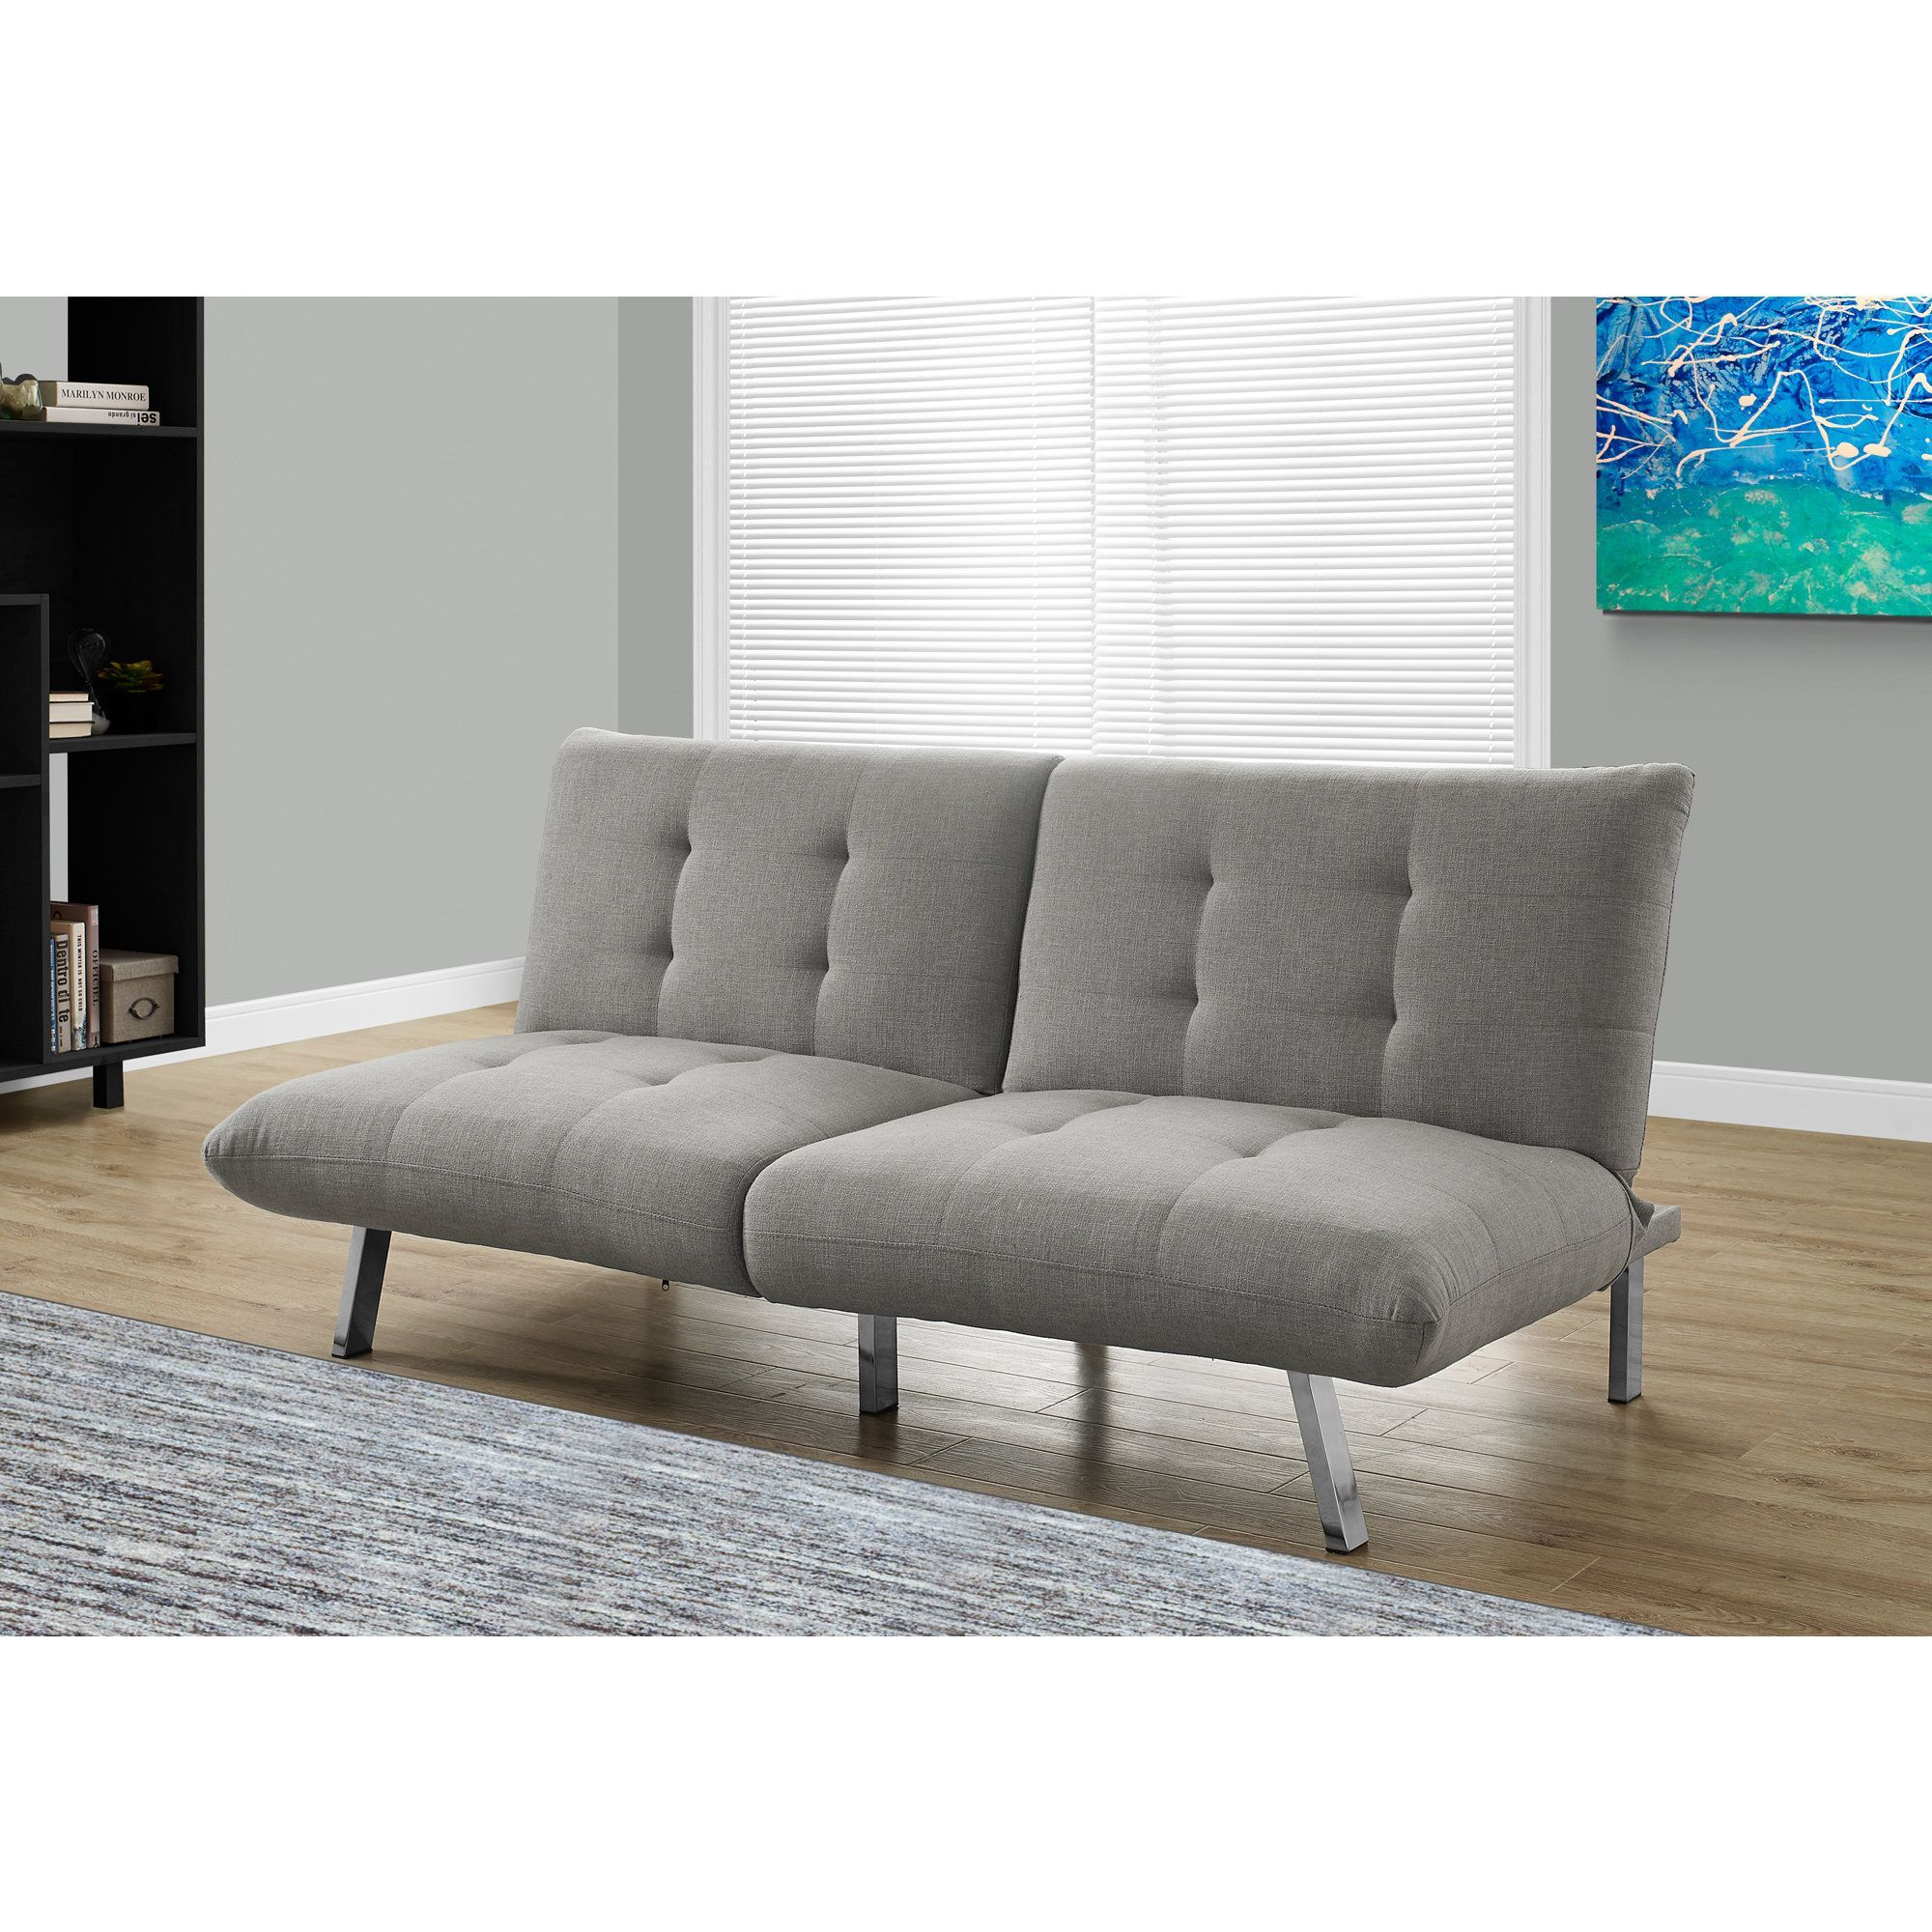 bed vinyl grey furniture clack great sofa futon heston click products deal